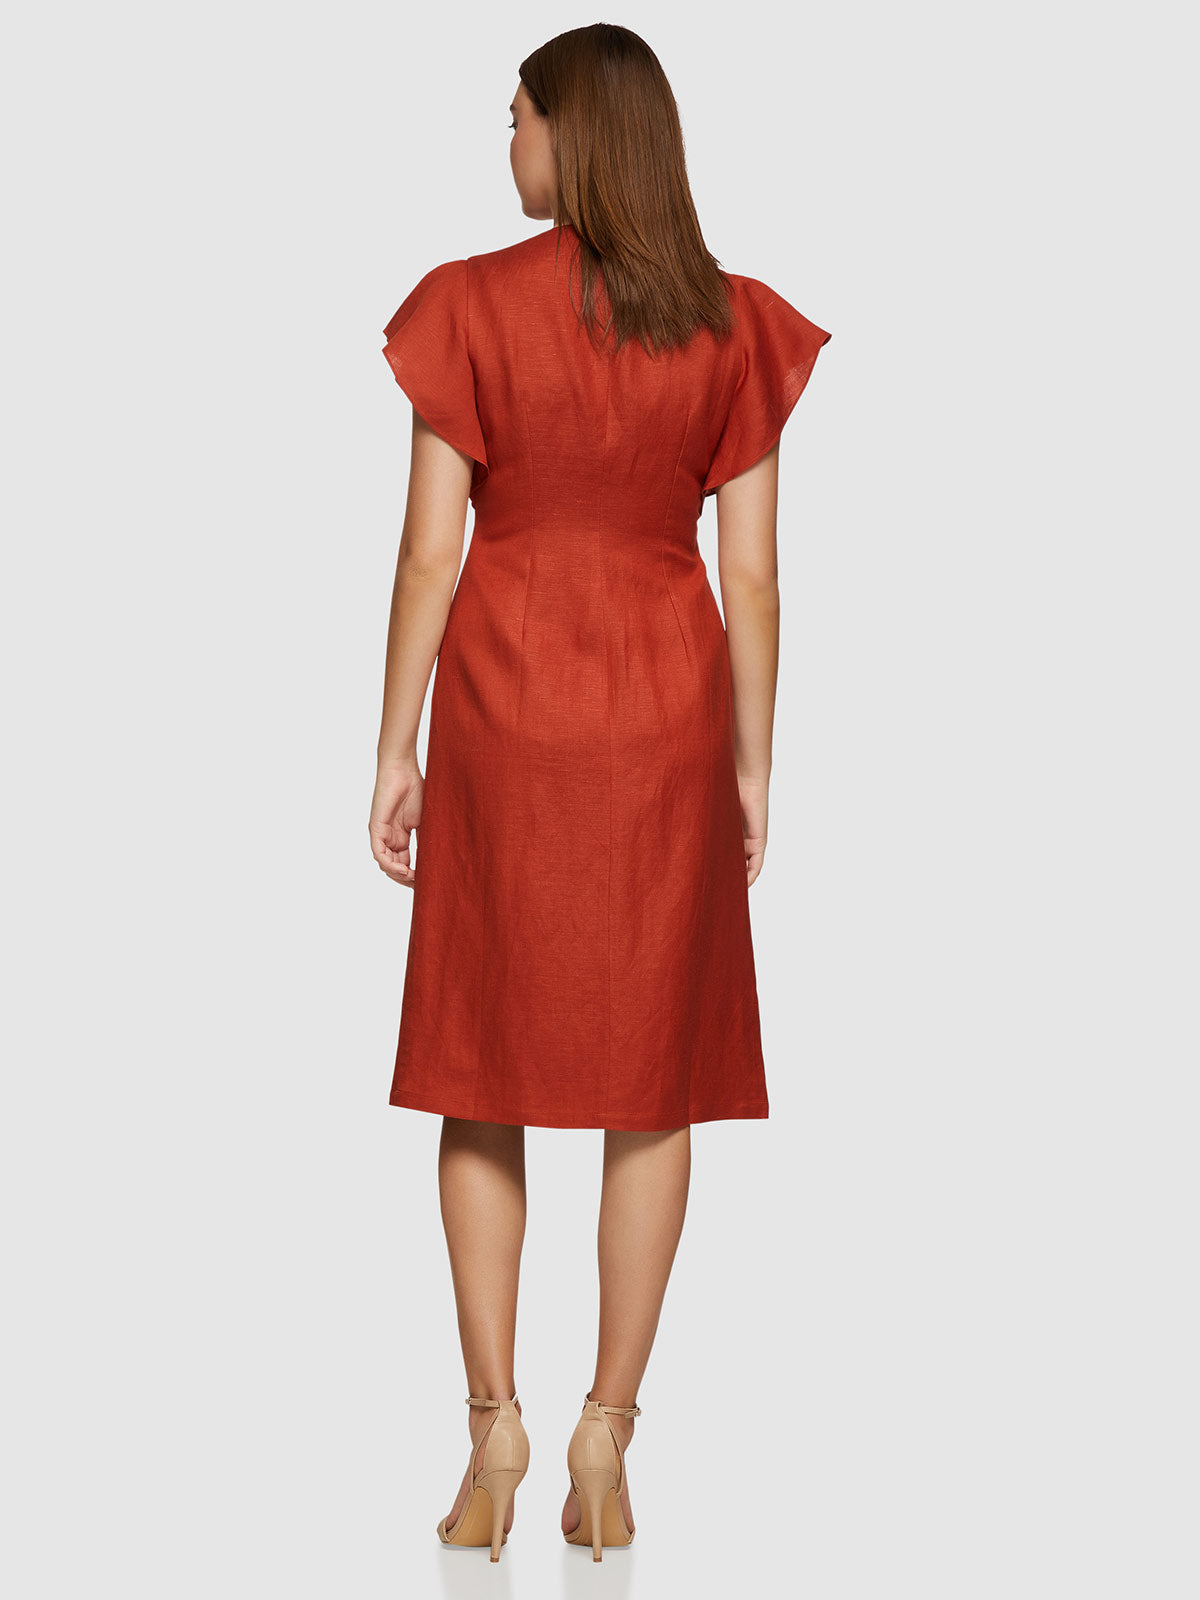 MICHEALA DRESS TERRACOTTA